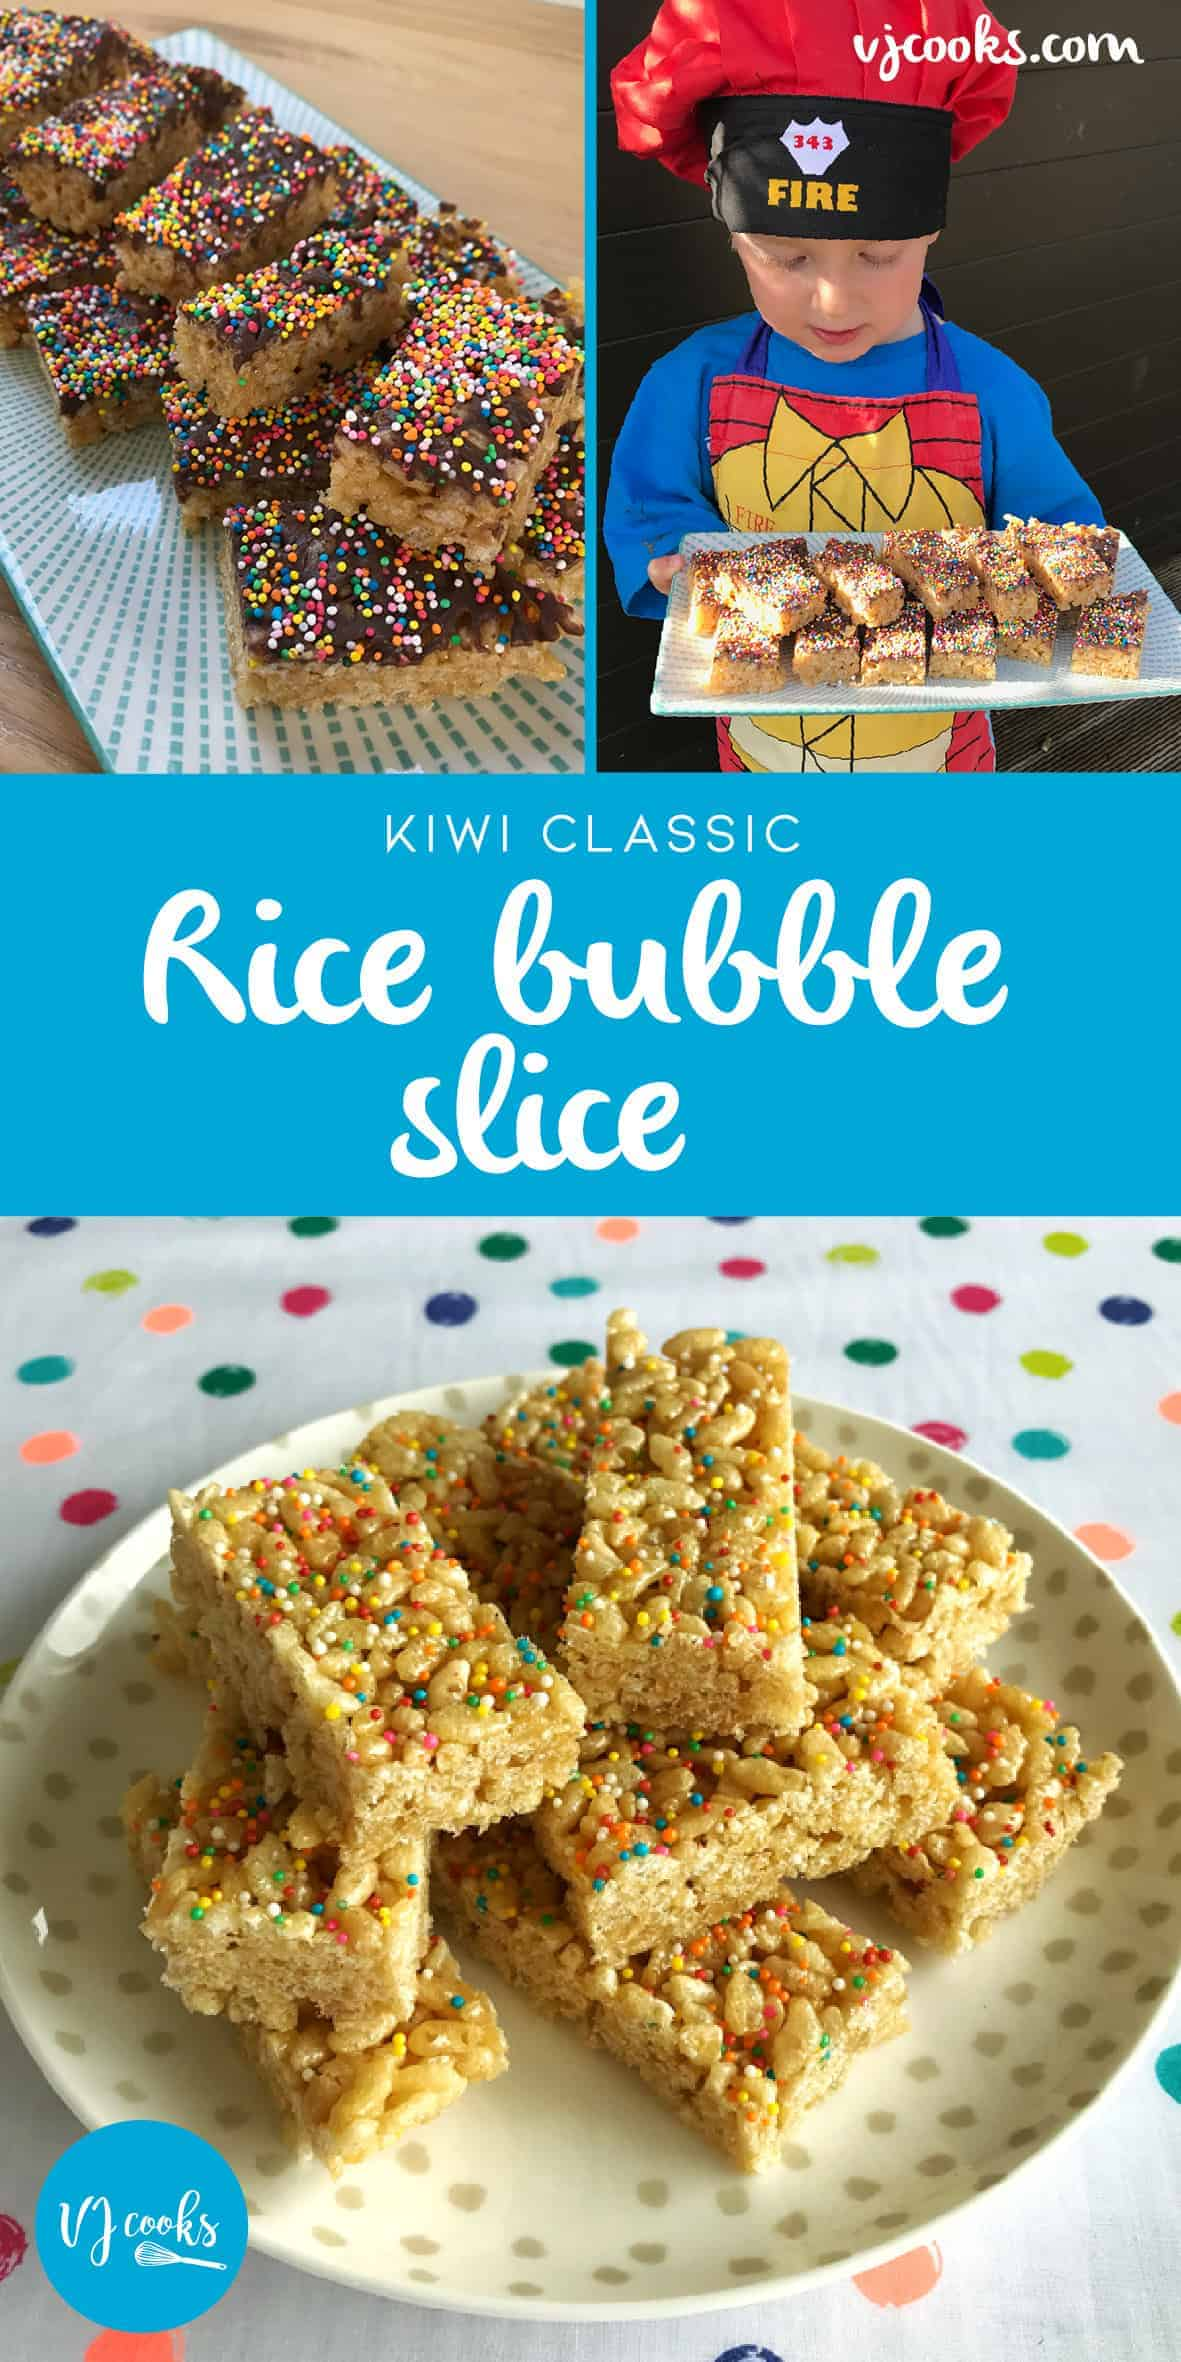 Kiwi classic rice bubble slice by vj cooks